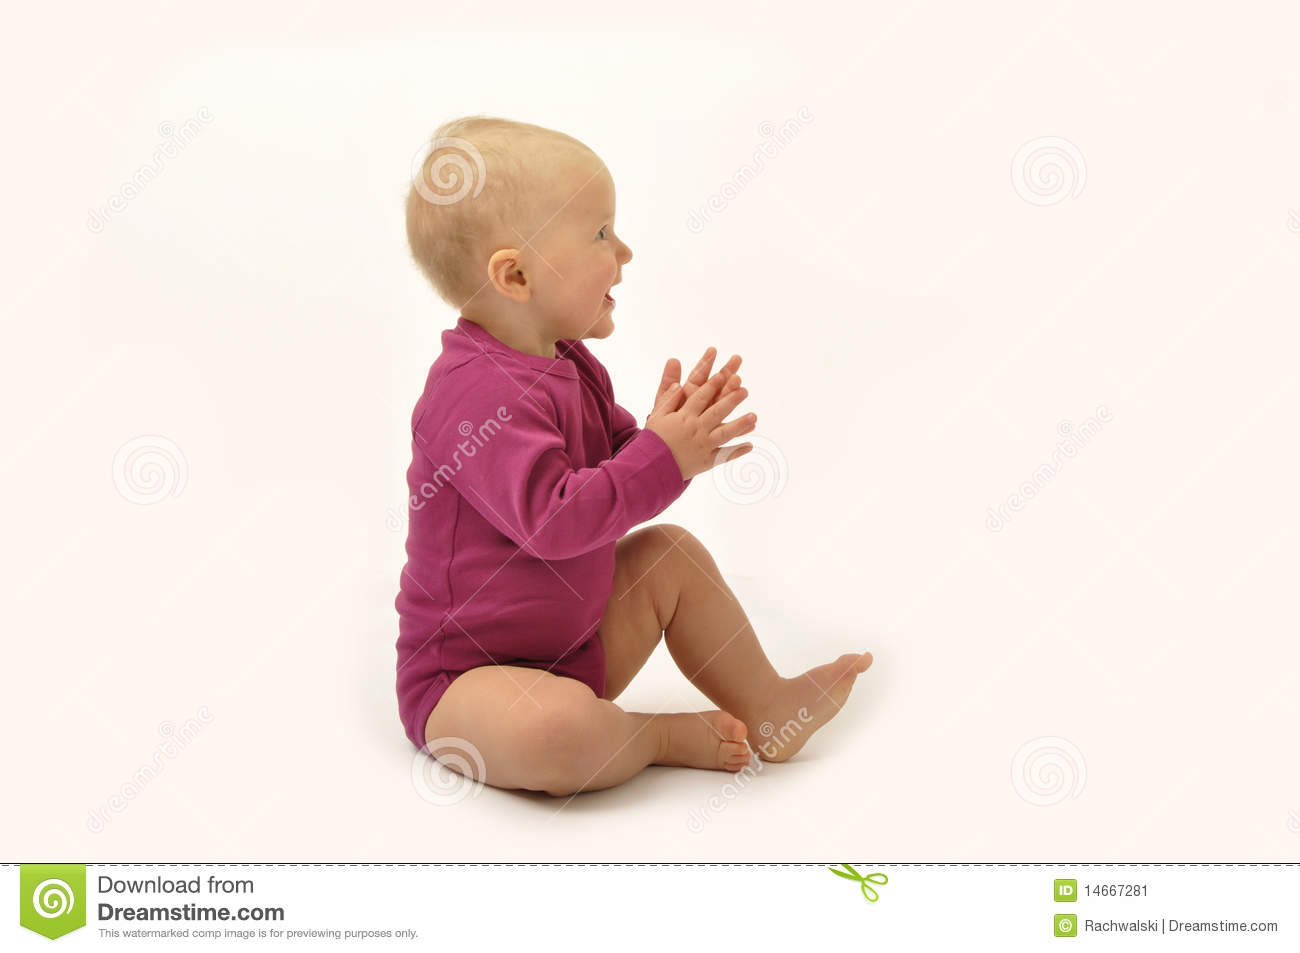 Baby Clapping Hands Stock Image - Image: 14667281